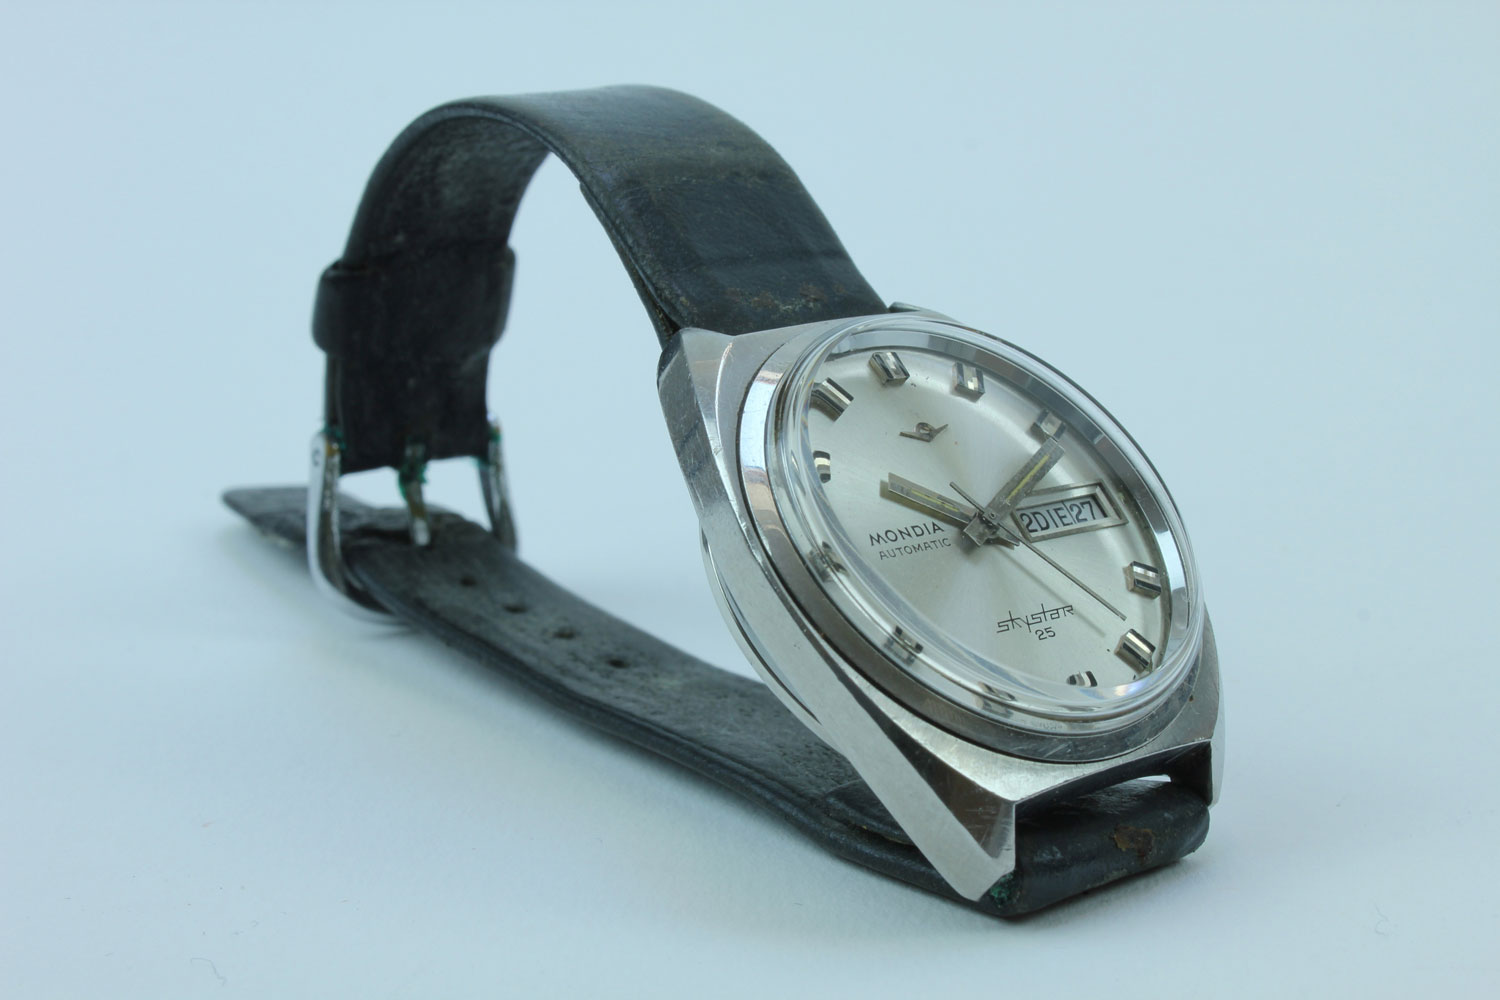 MONDIA WATCH SWISSMADE SKYSTAR 25 WATCH VINTAGE USED